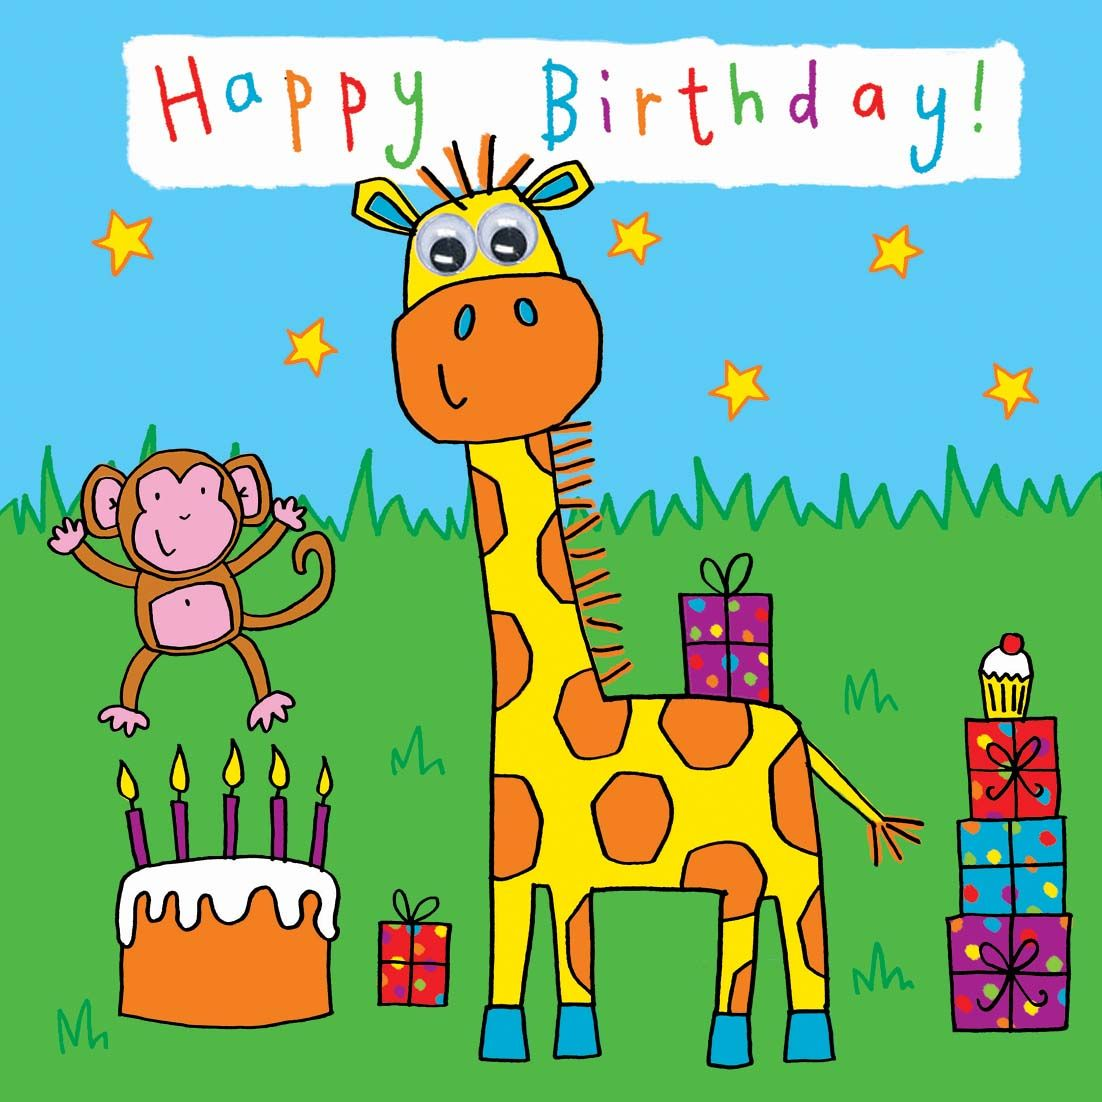 Kids Greeting Cards Birthday Kids Greeting Cards Pinterest - Free childrens birthday e cards